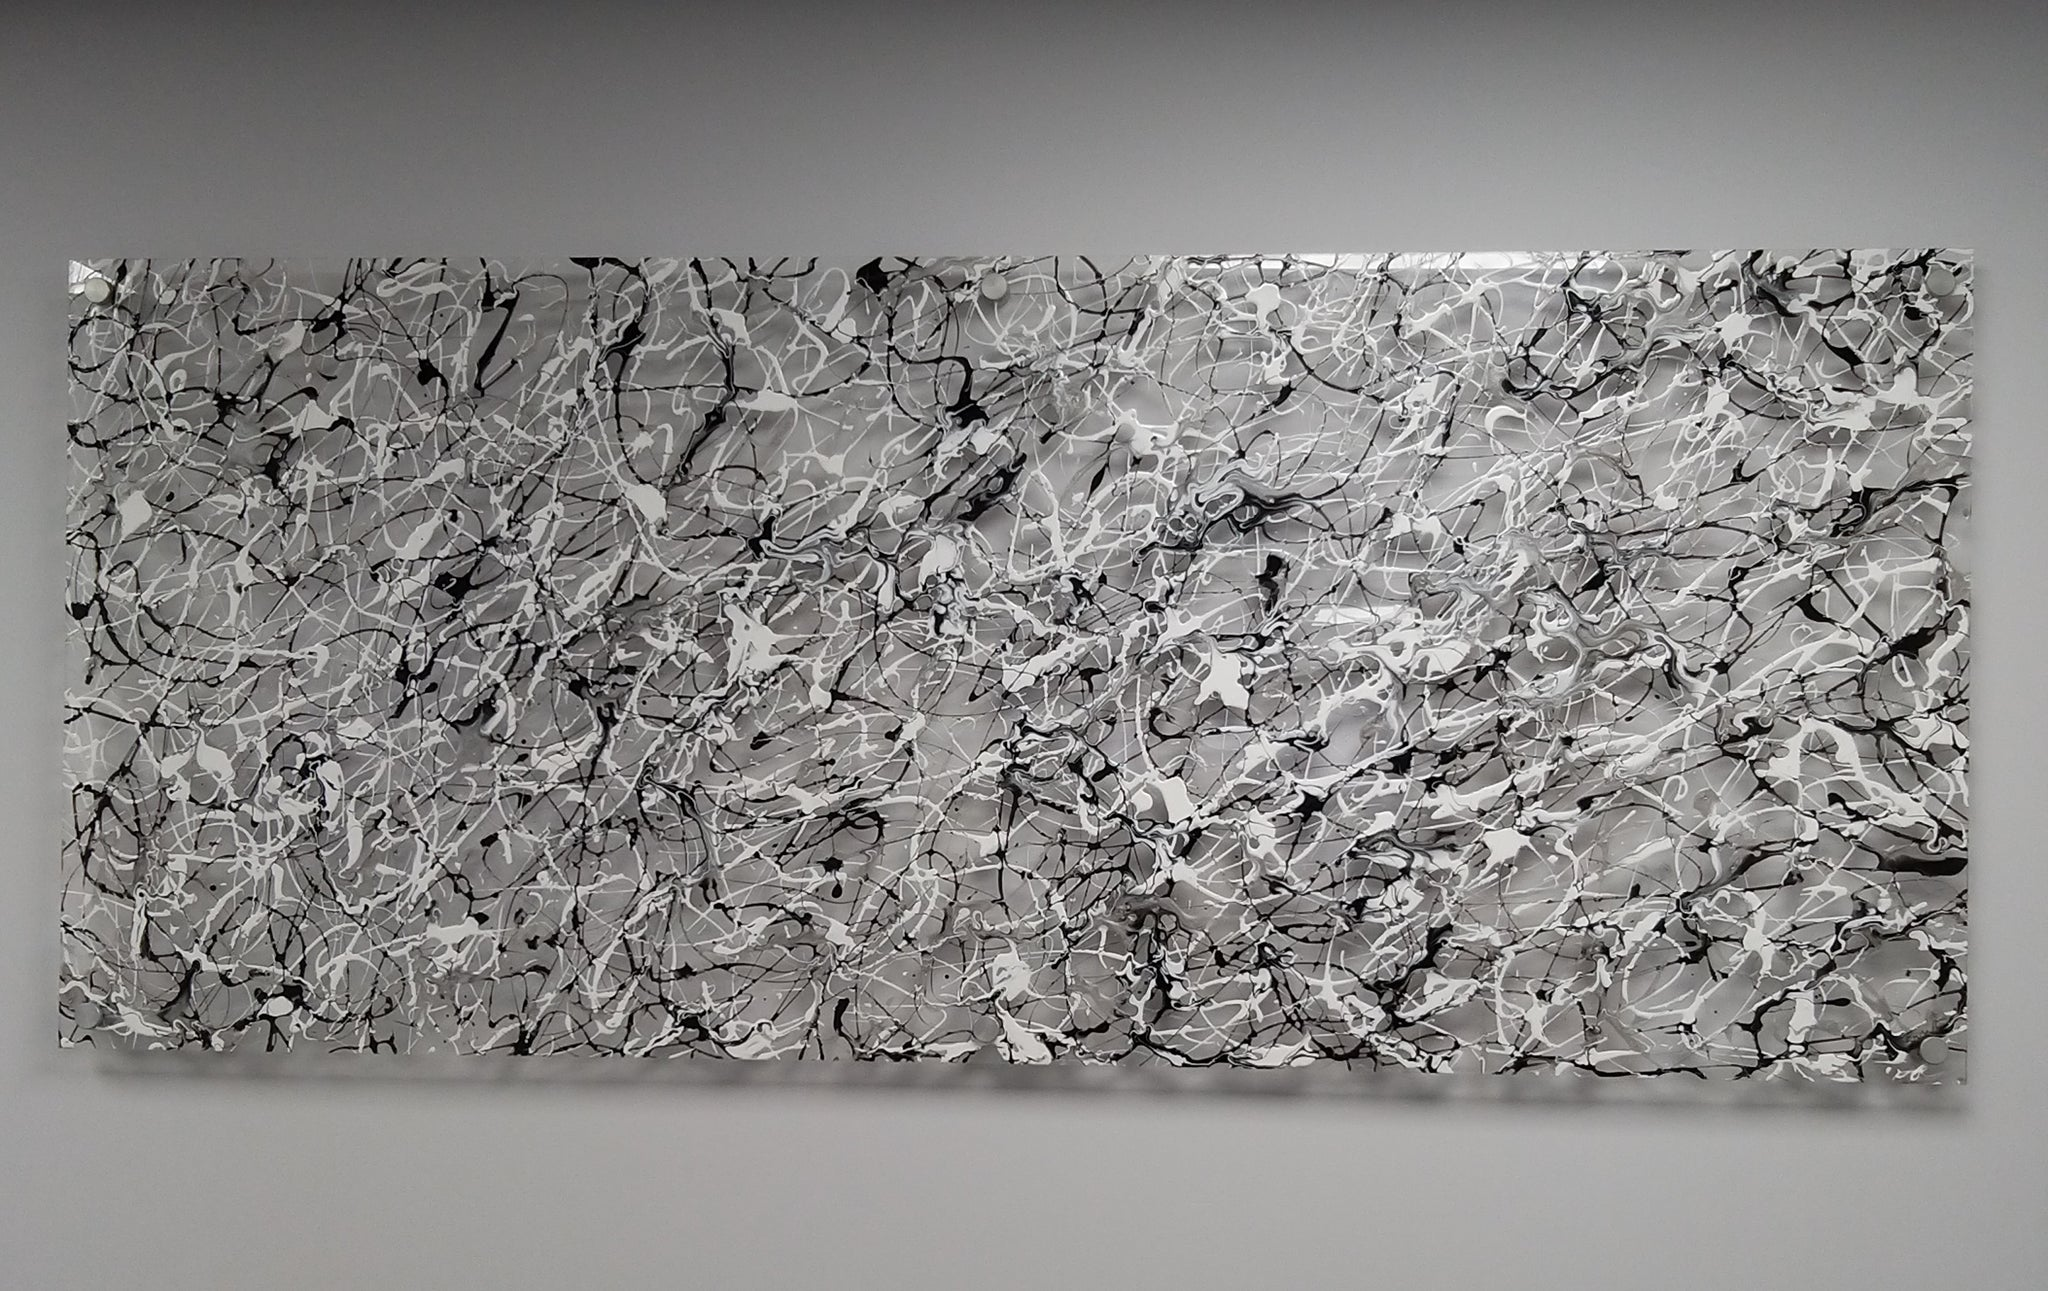 Silver Web - Plexiglass Abstract Art